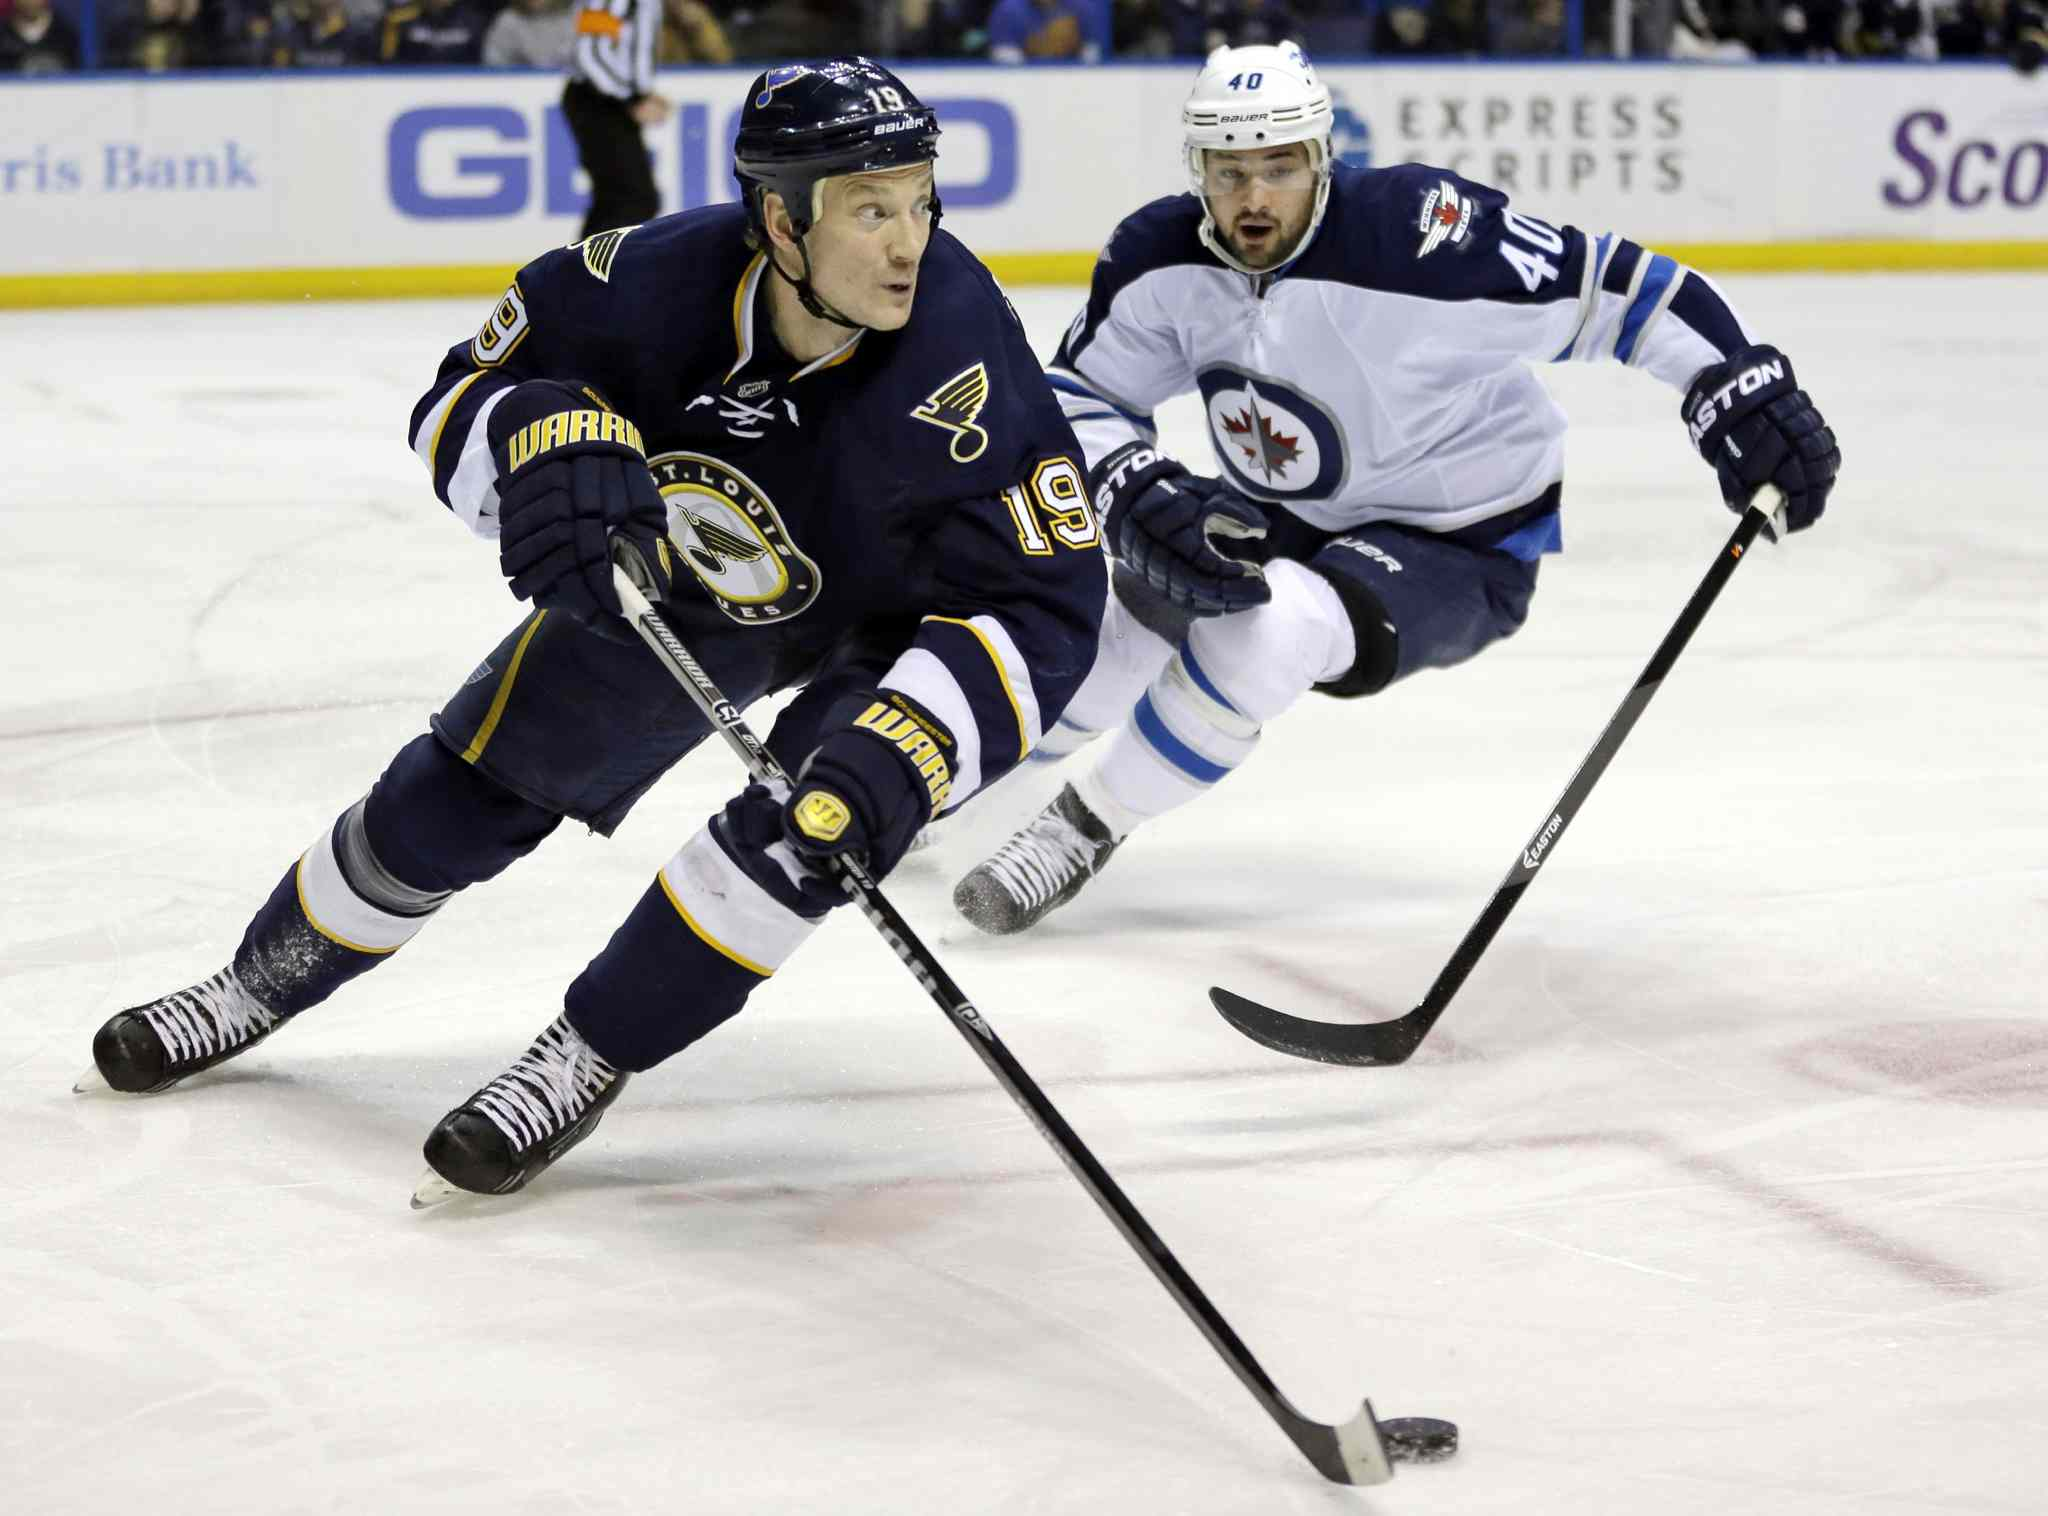 St. Louis Blues' Jay Bouwmeester, left, controls the puck as Winnipeg Jets' Devin Setoguchi gives chase during the first period of Saturday's game.